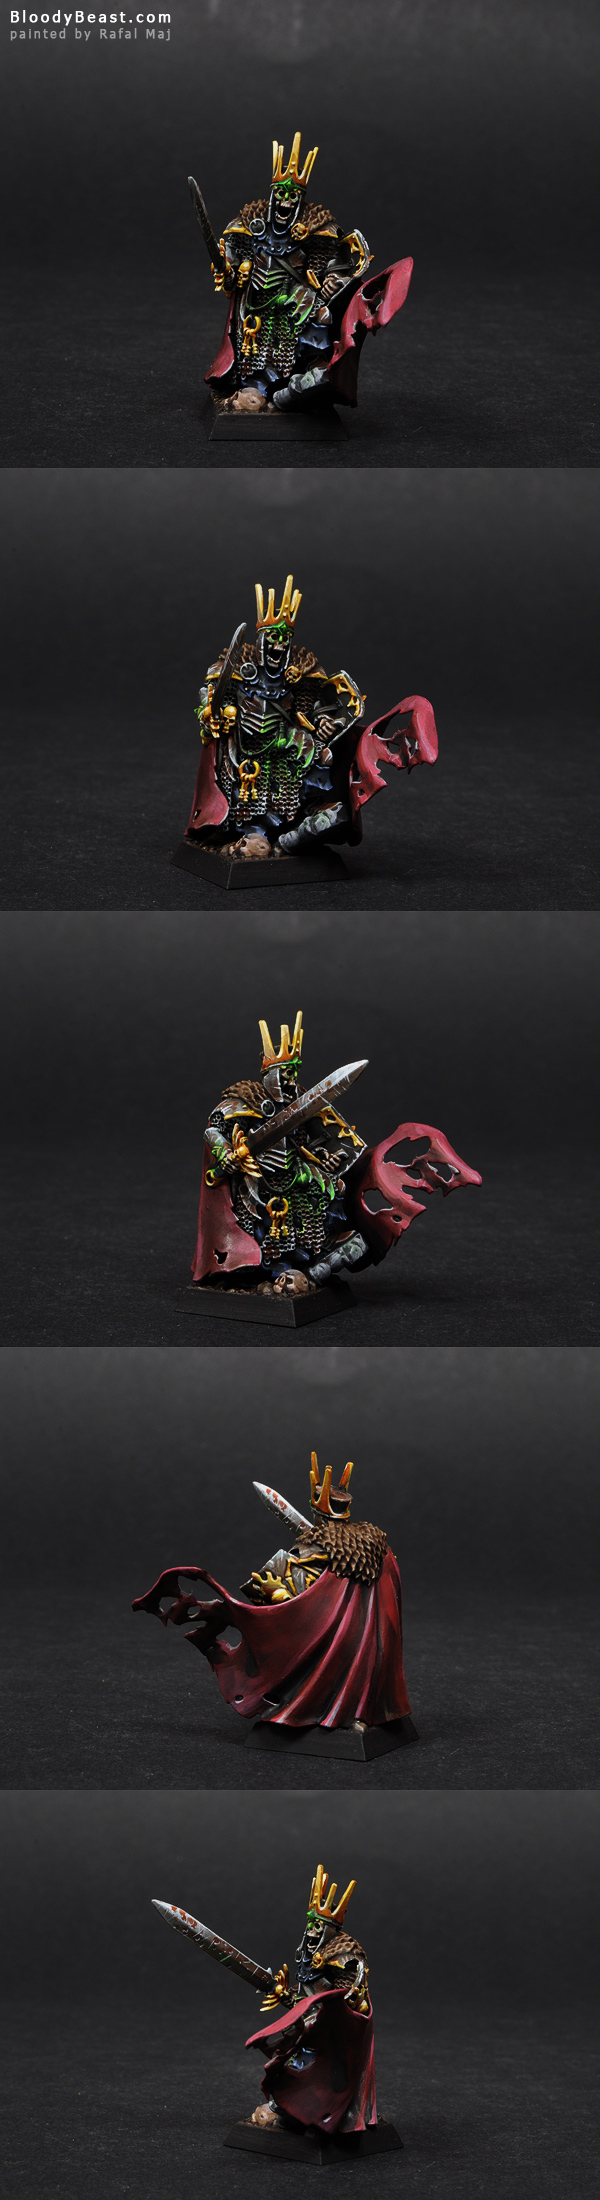 Vampire Counts Wight King painted by Rafal Maj (BloodyBeast.com)